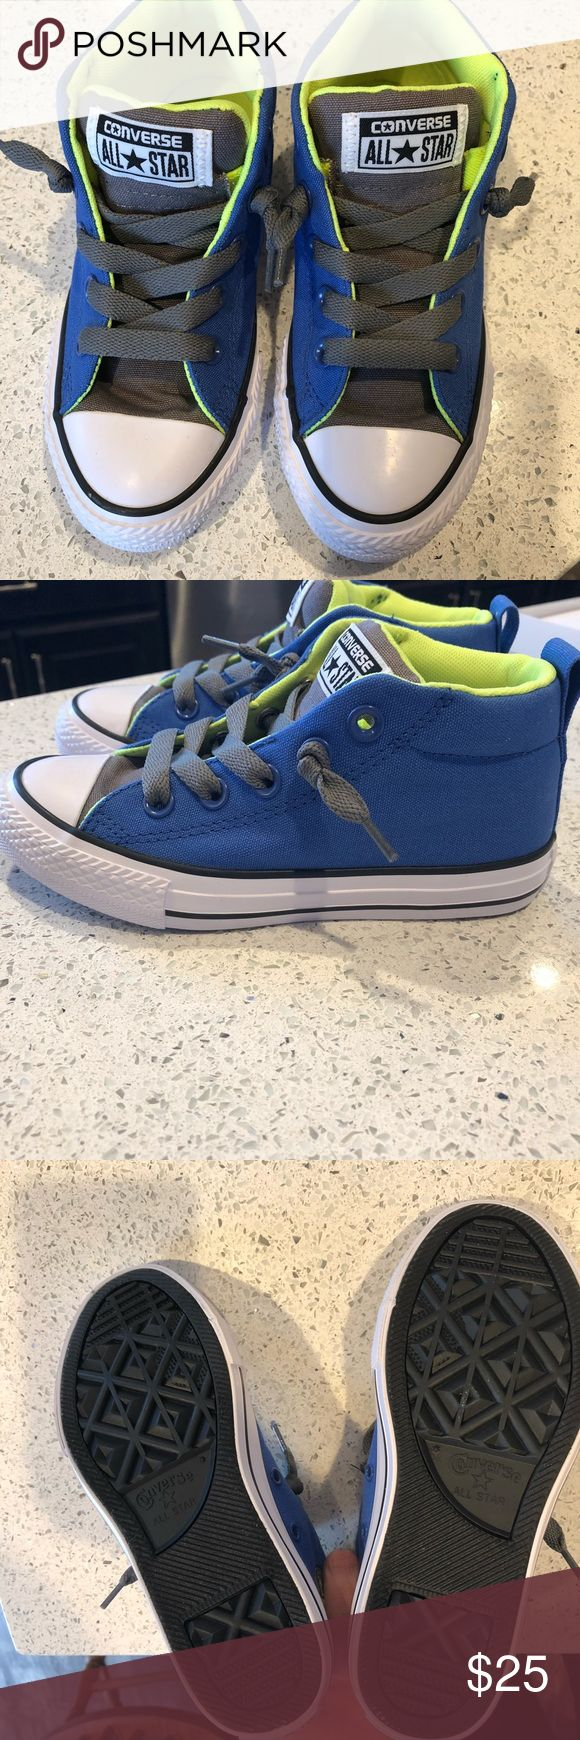 Converse shoes boys Brand new converse shoes size 13 boys Converse Shoes Sneakers